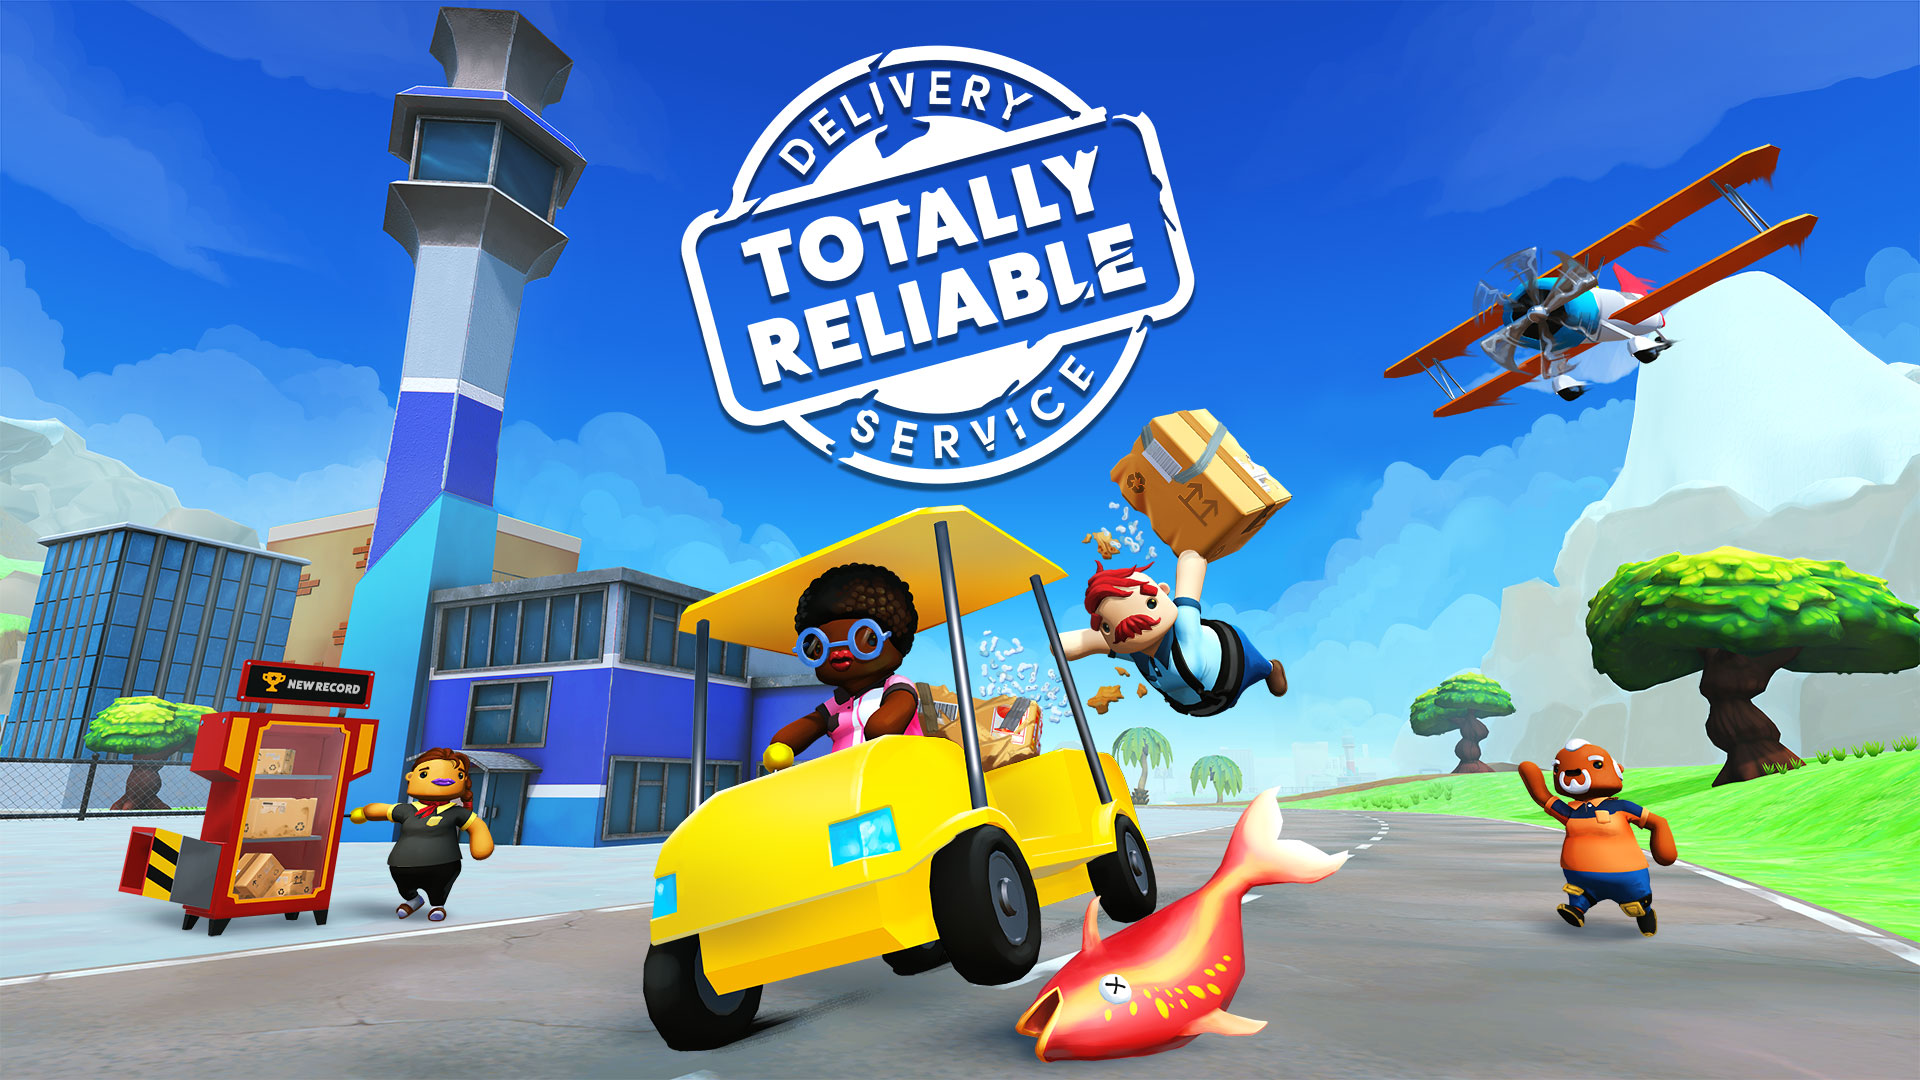 Totally Reliable Delivery Service is a quirky ragdoll physics game that just landed on Android - Android Police